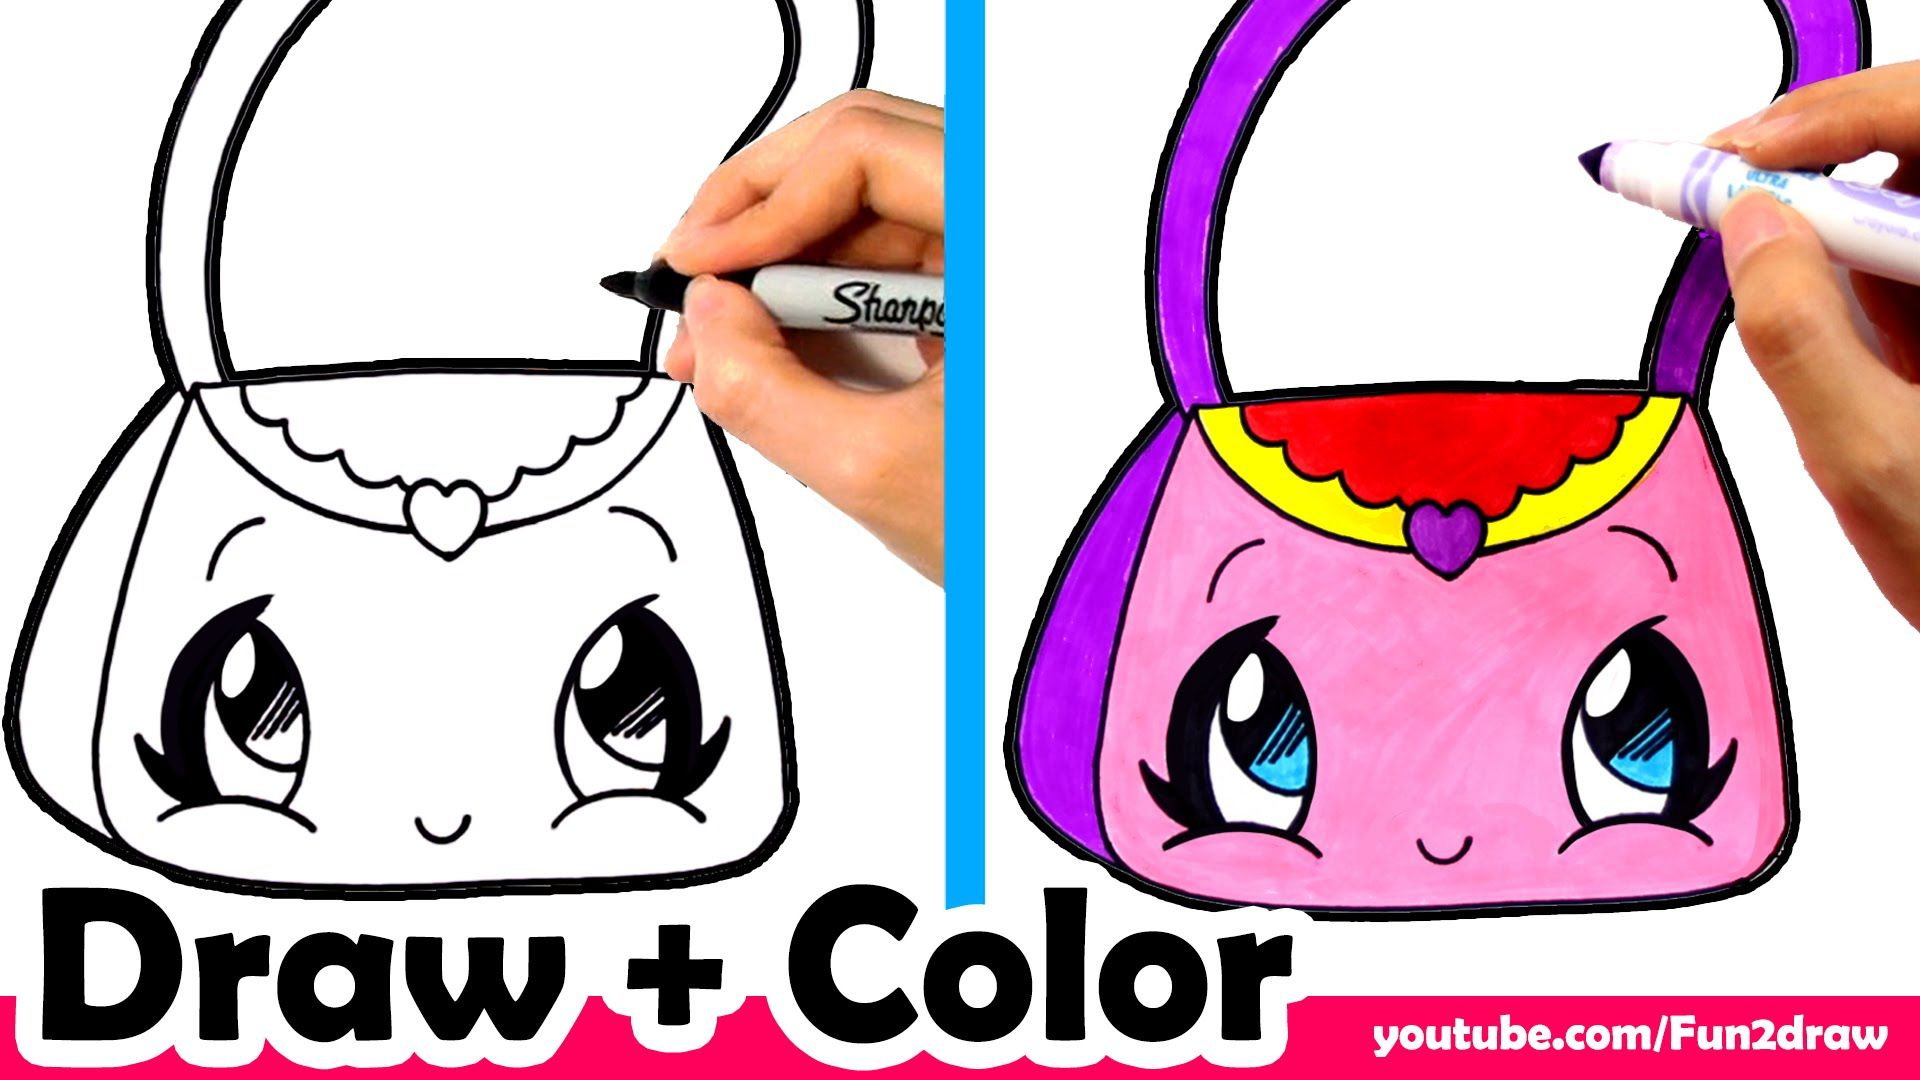 100 Drawings CHALLENGE - Mei Yu Draws 100 Cats #21 ... |Fun2draw Toys